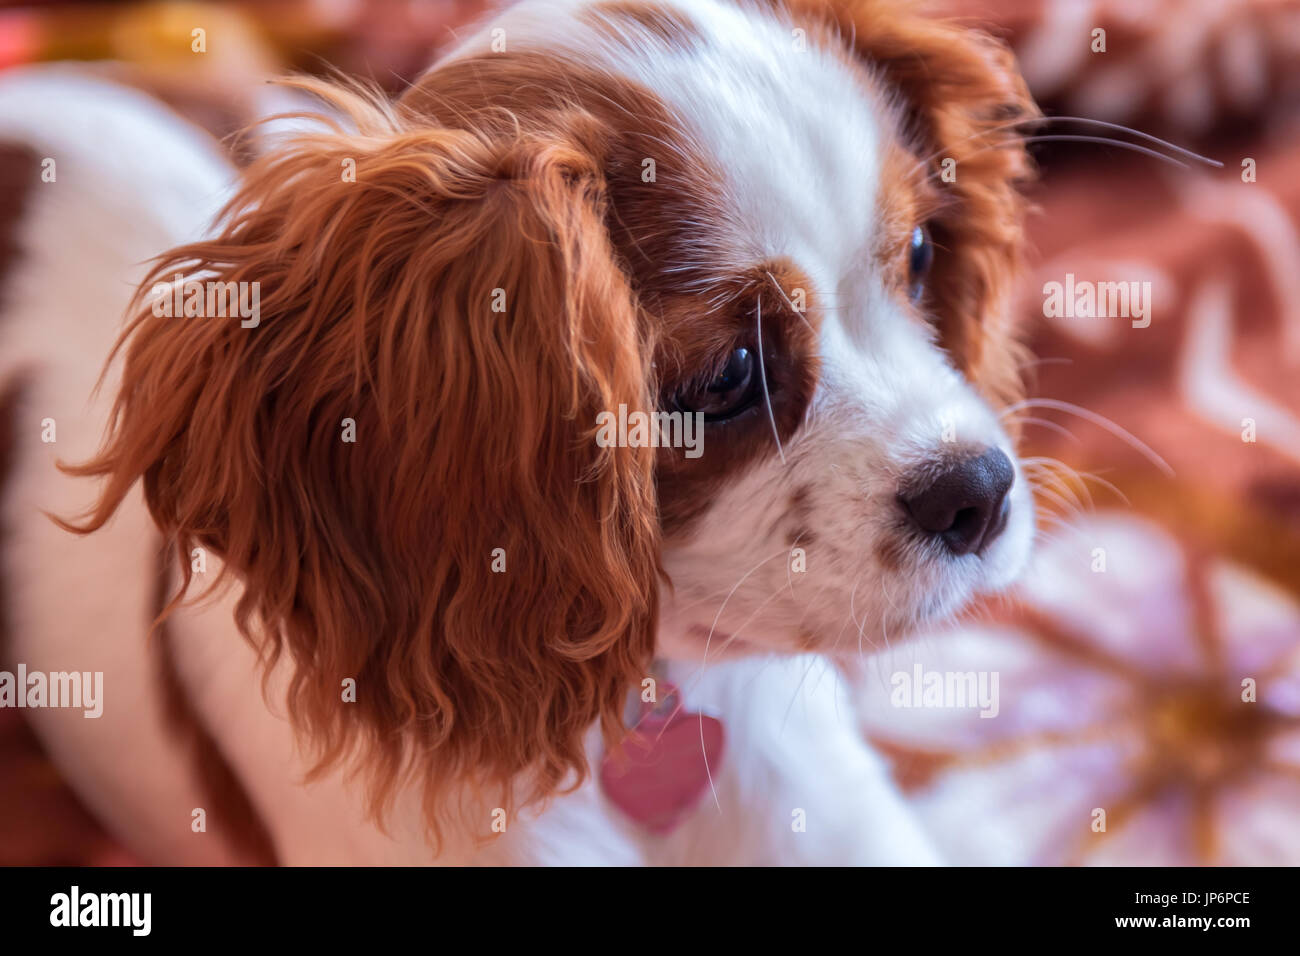 King Charles Spaniel puppy - Stock Image